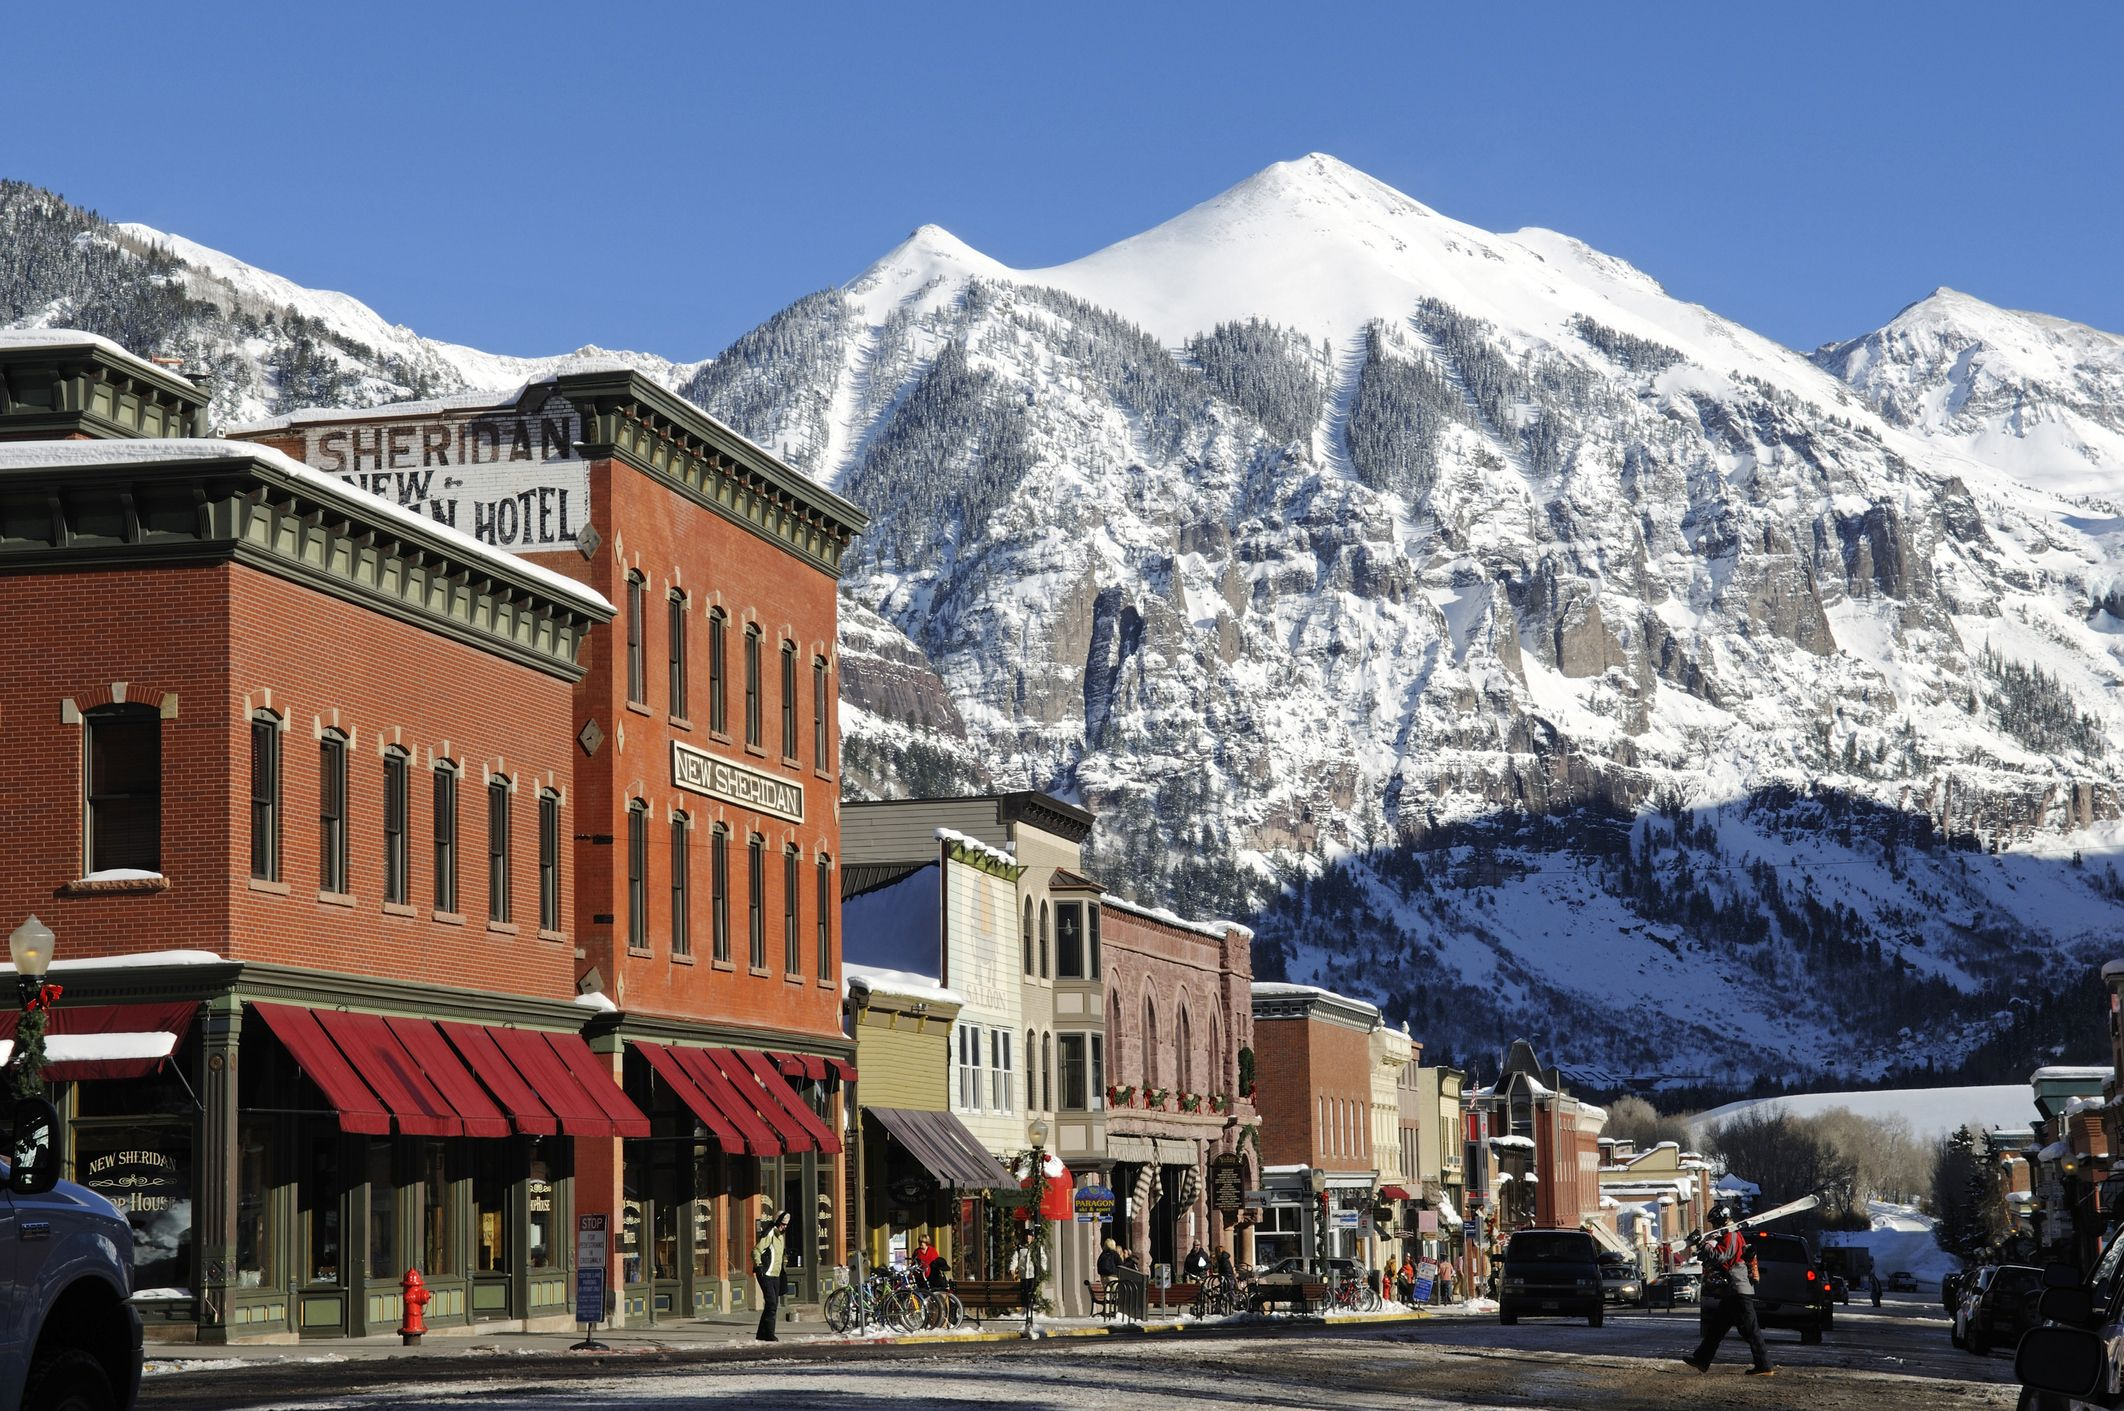 Telluride, Colorado, USA